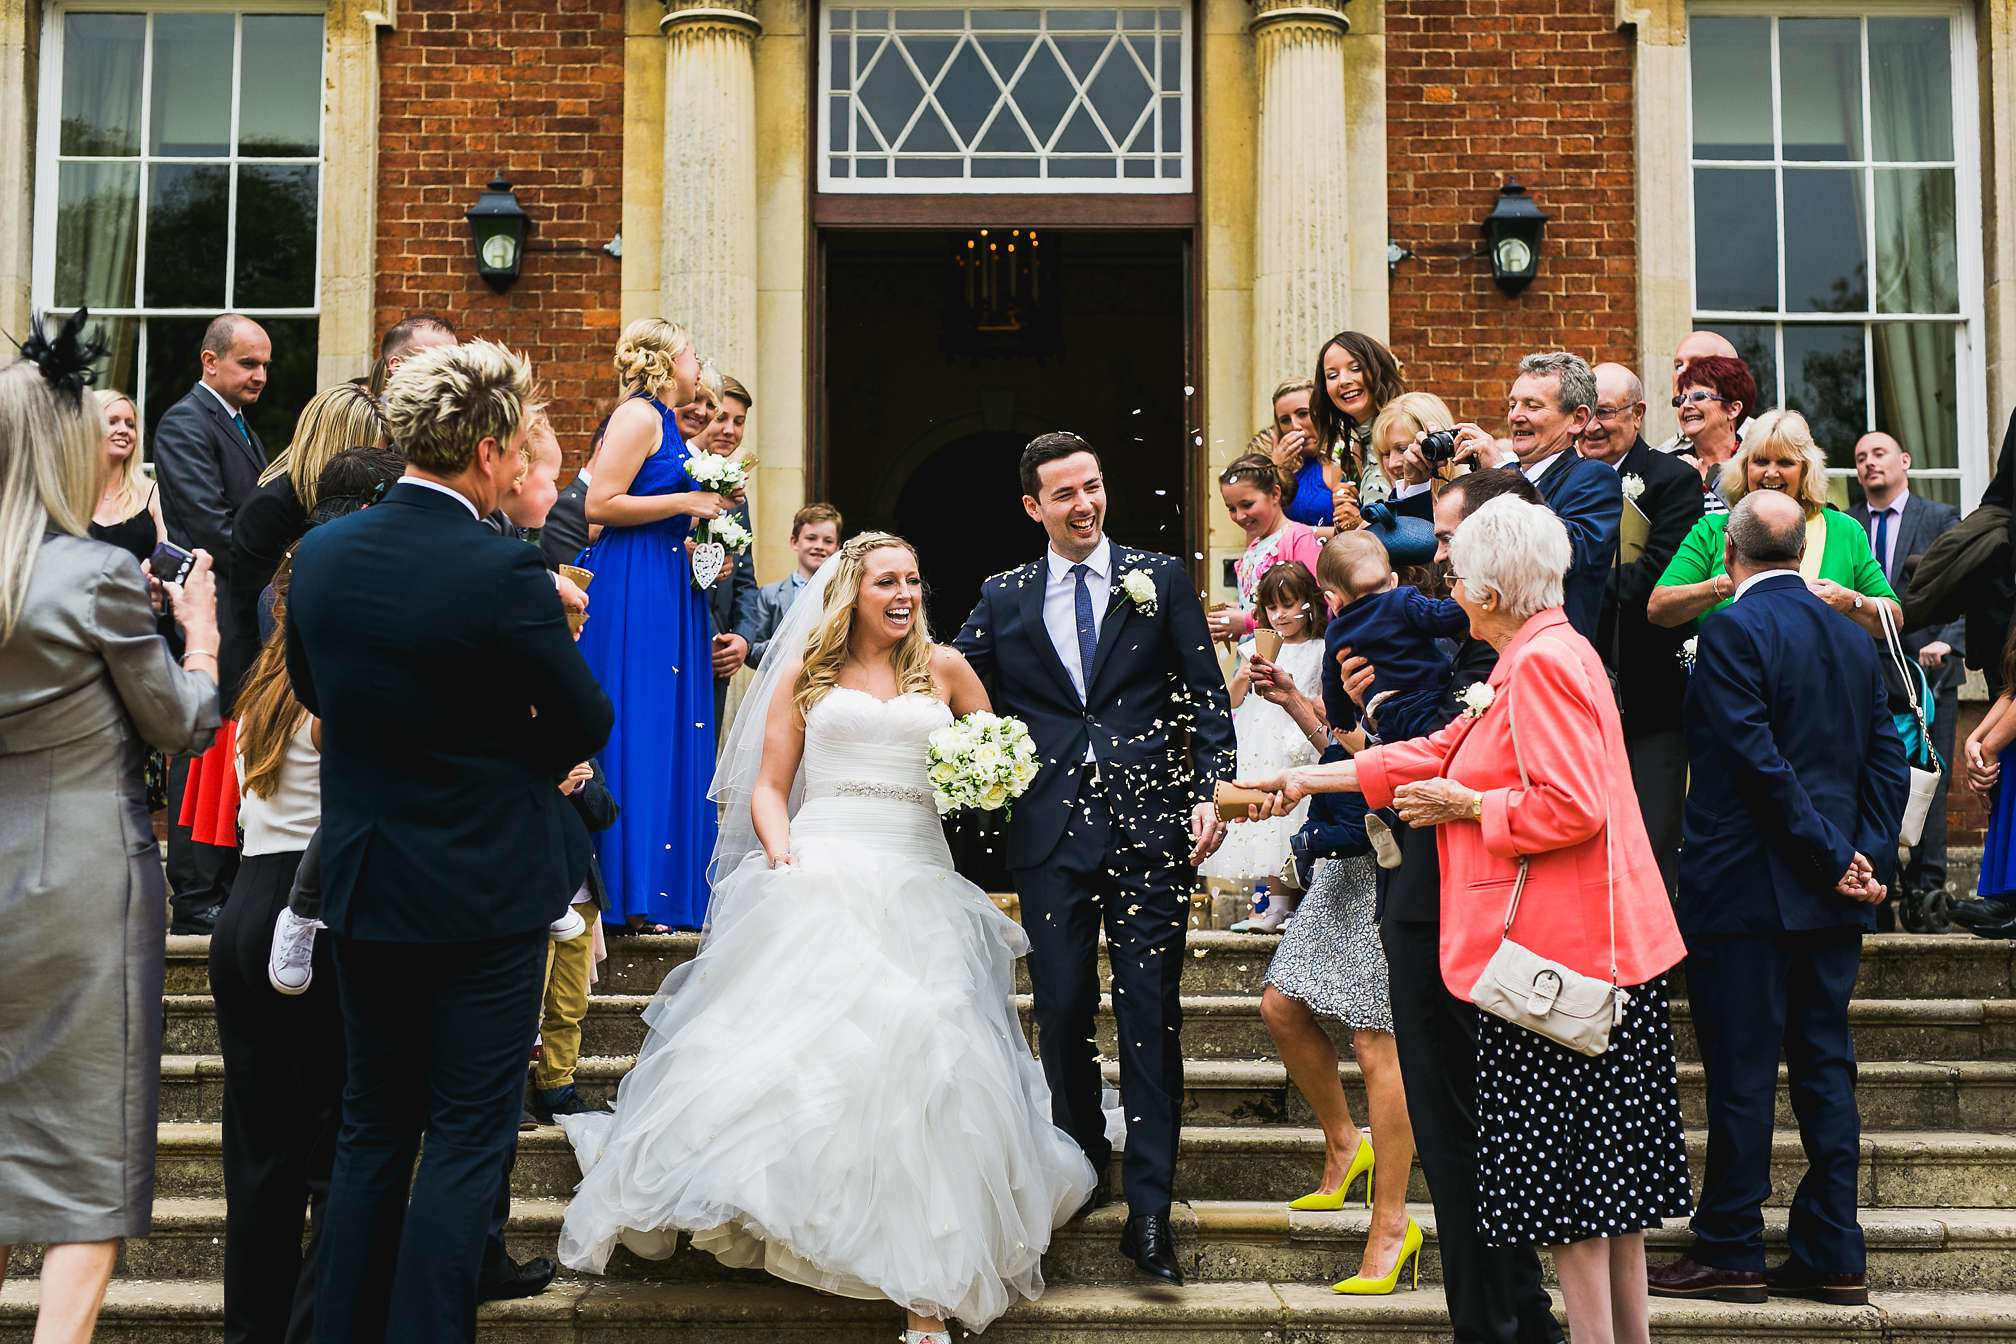 Kelmarsh Hall and Gardens confetti on the steps